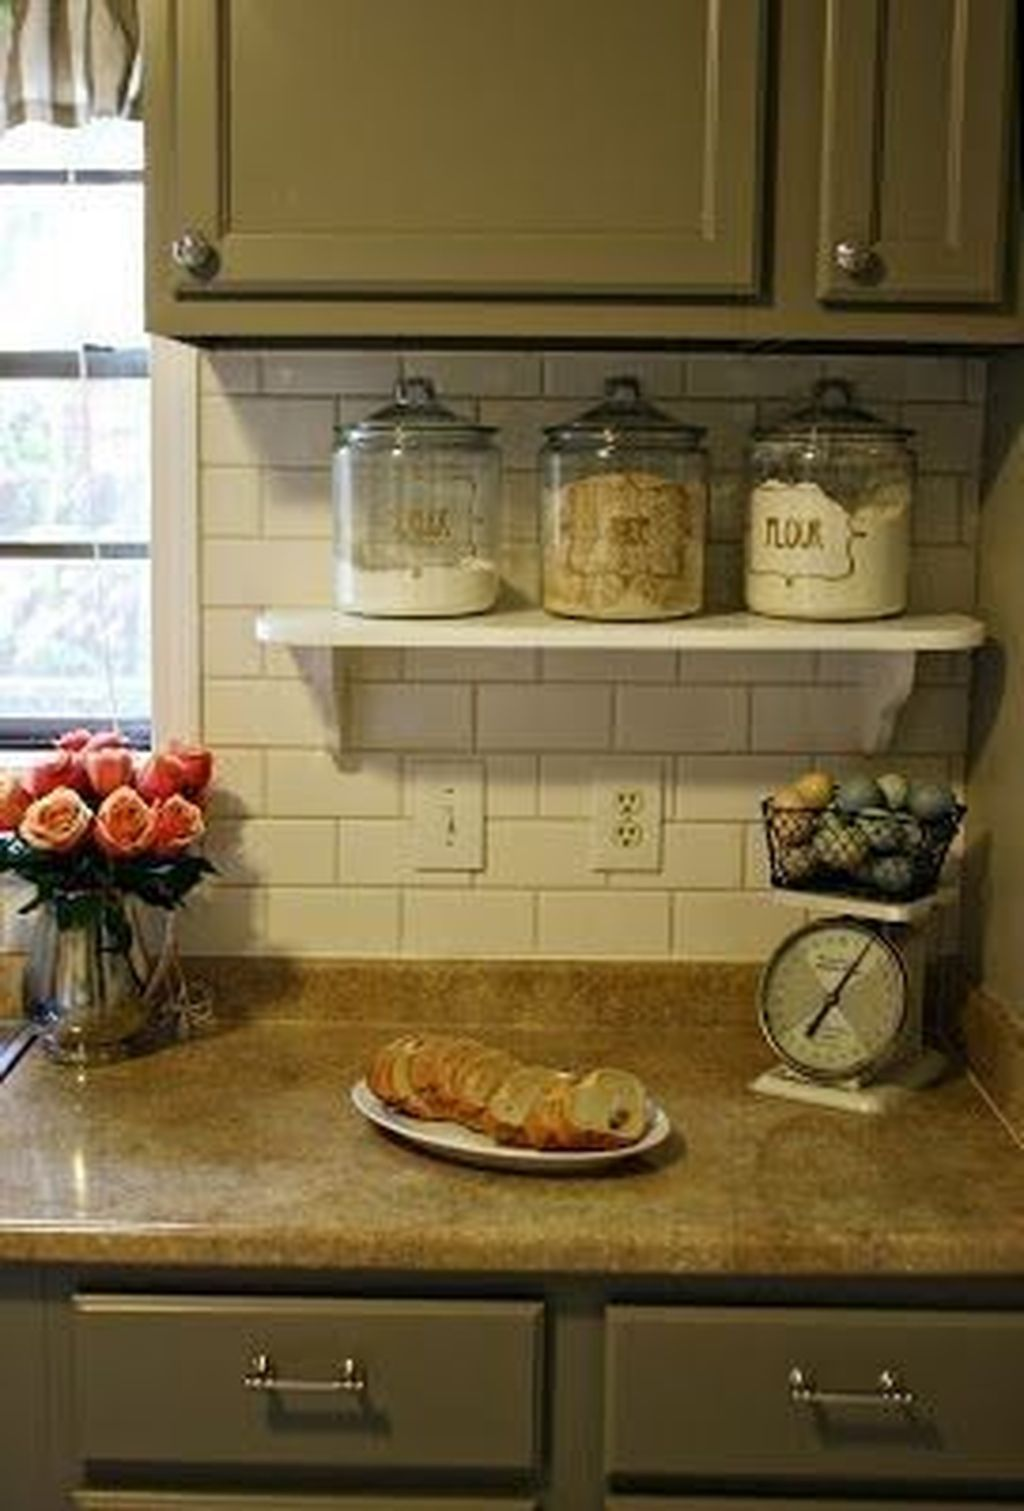 brilliant small kitchen remodel ideas 06 kitchen remodel on brilliant kitchen cabinet organization and tips ideas more space discover things quicker id=41150